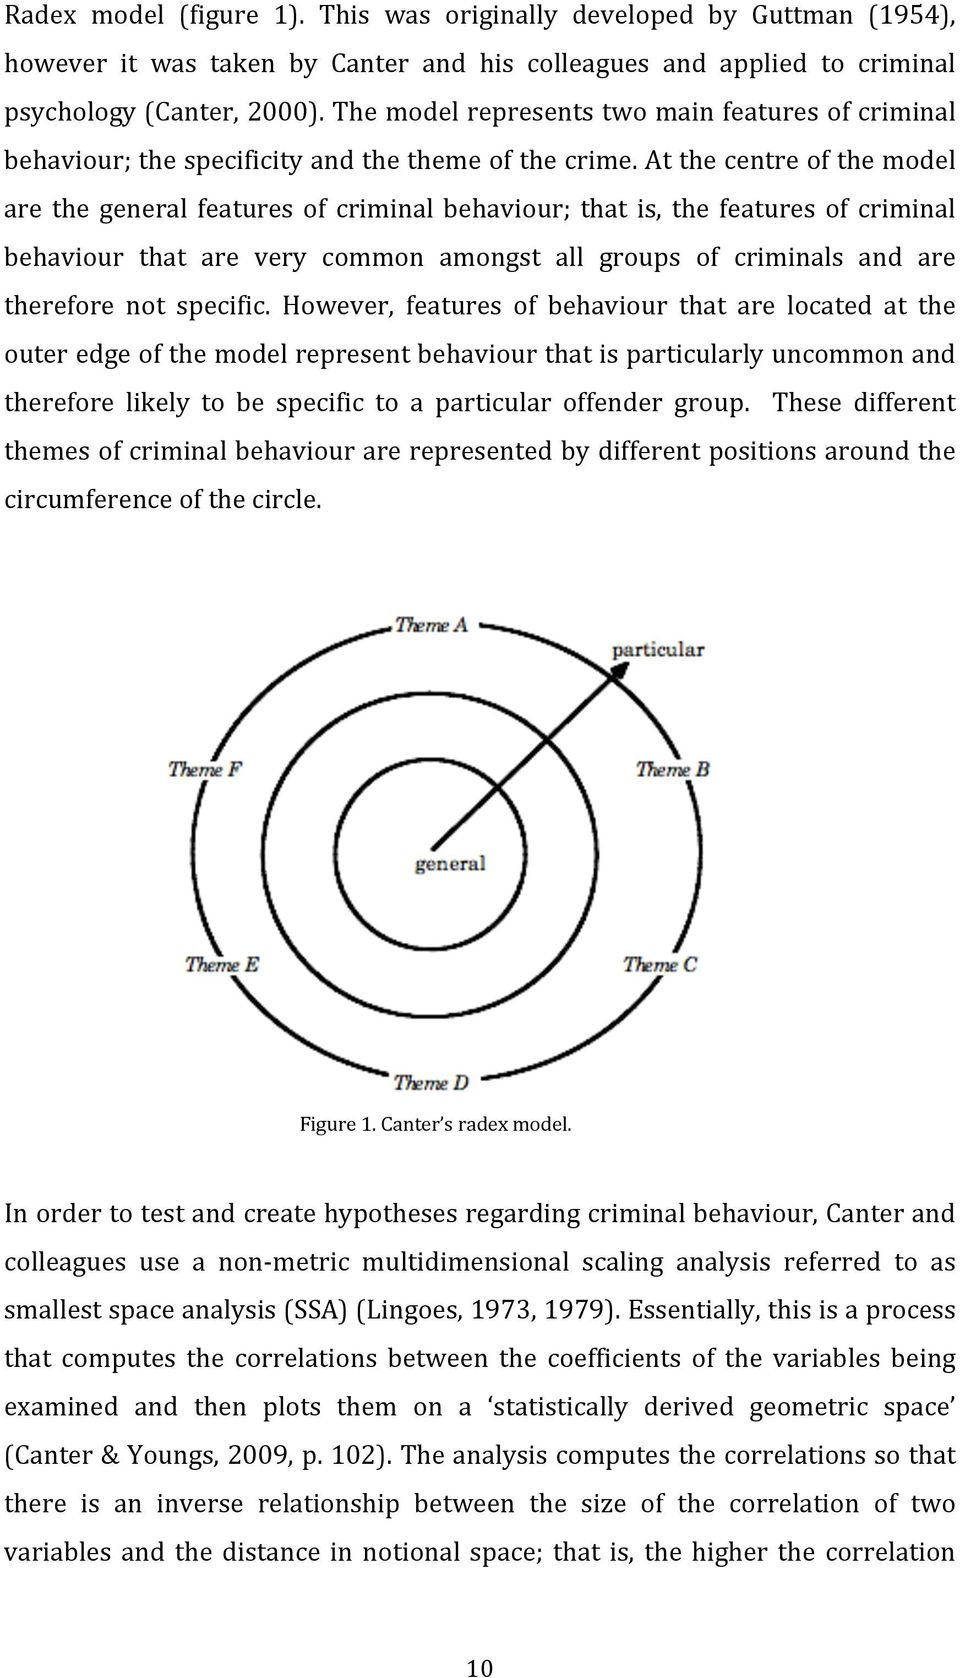 atthecentreofthemodel are the general features of criminal behaviour; that is, the features of criminal behaviour that are very common amongst all groups of criminals and are therefore not specific.